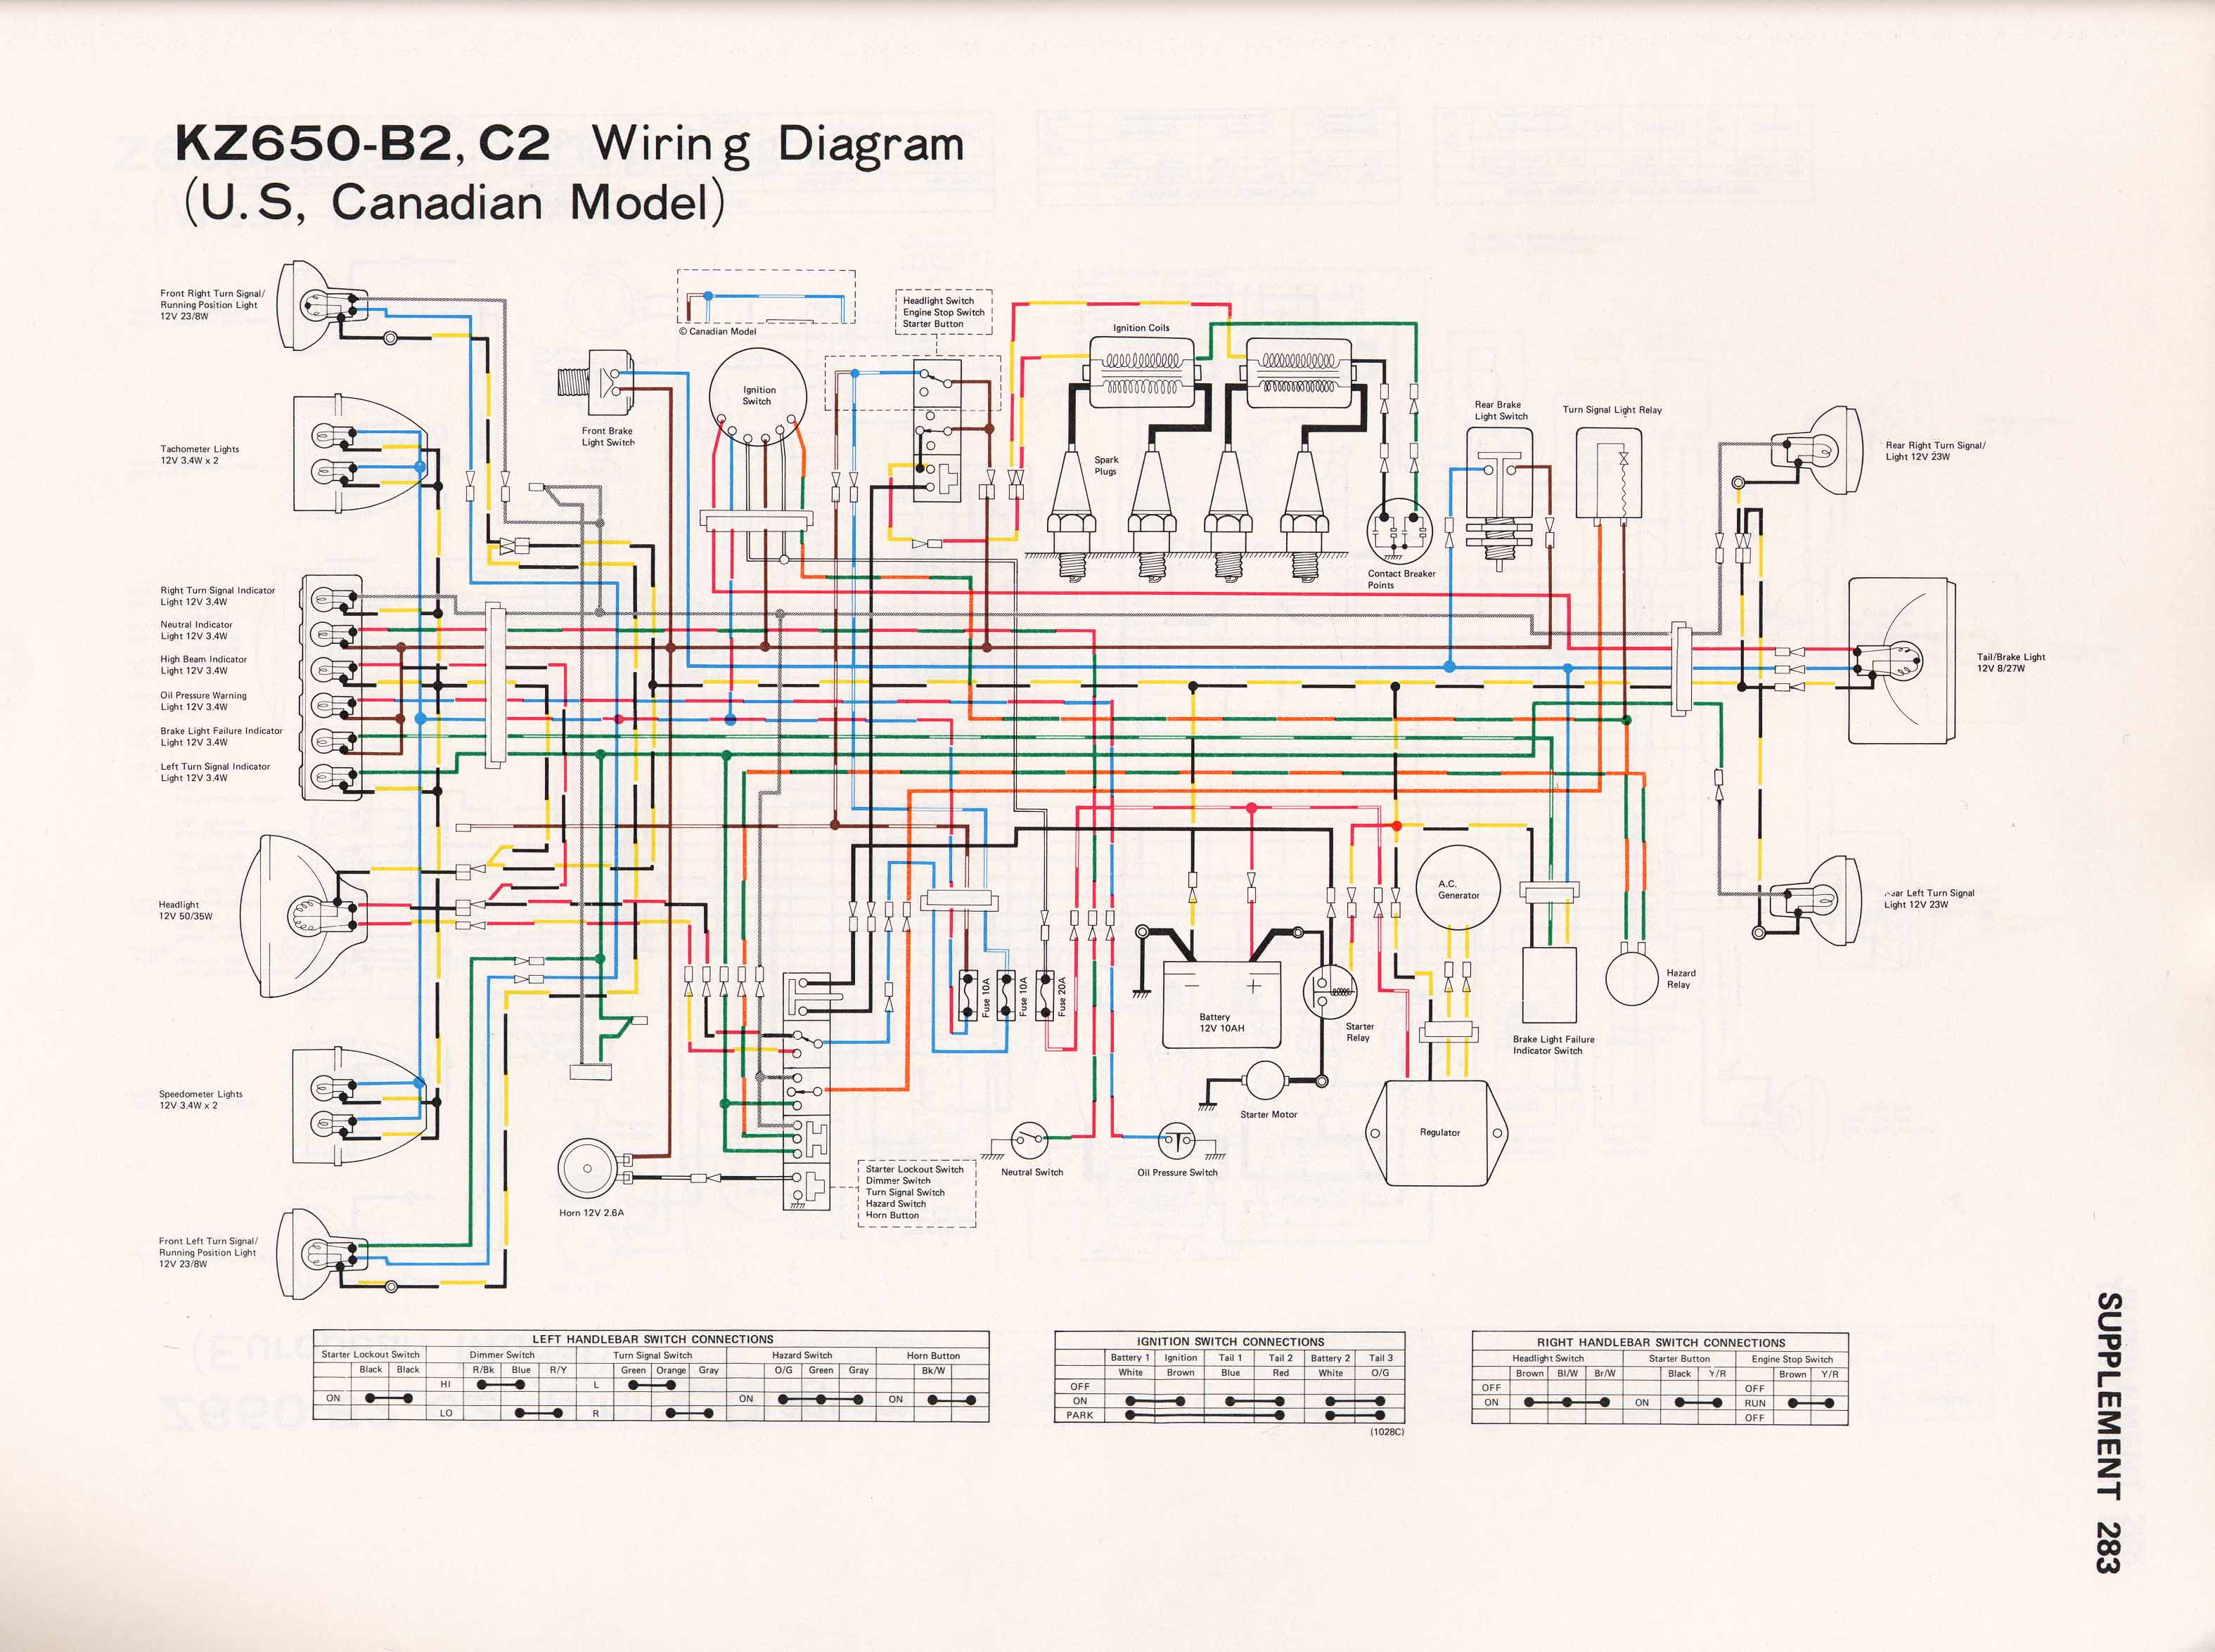 Kawasaki 1000 Wiring Diagram Library Rhino 700 Fuel Filter Kz650 Diagrams